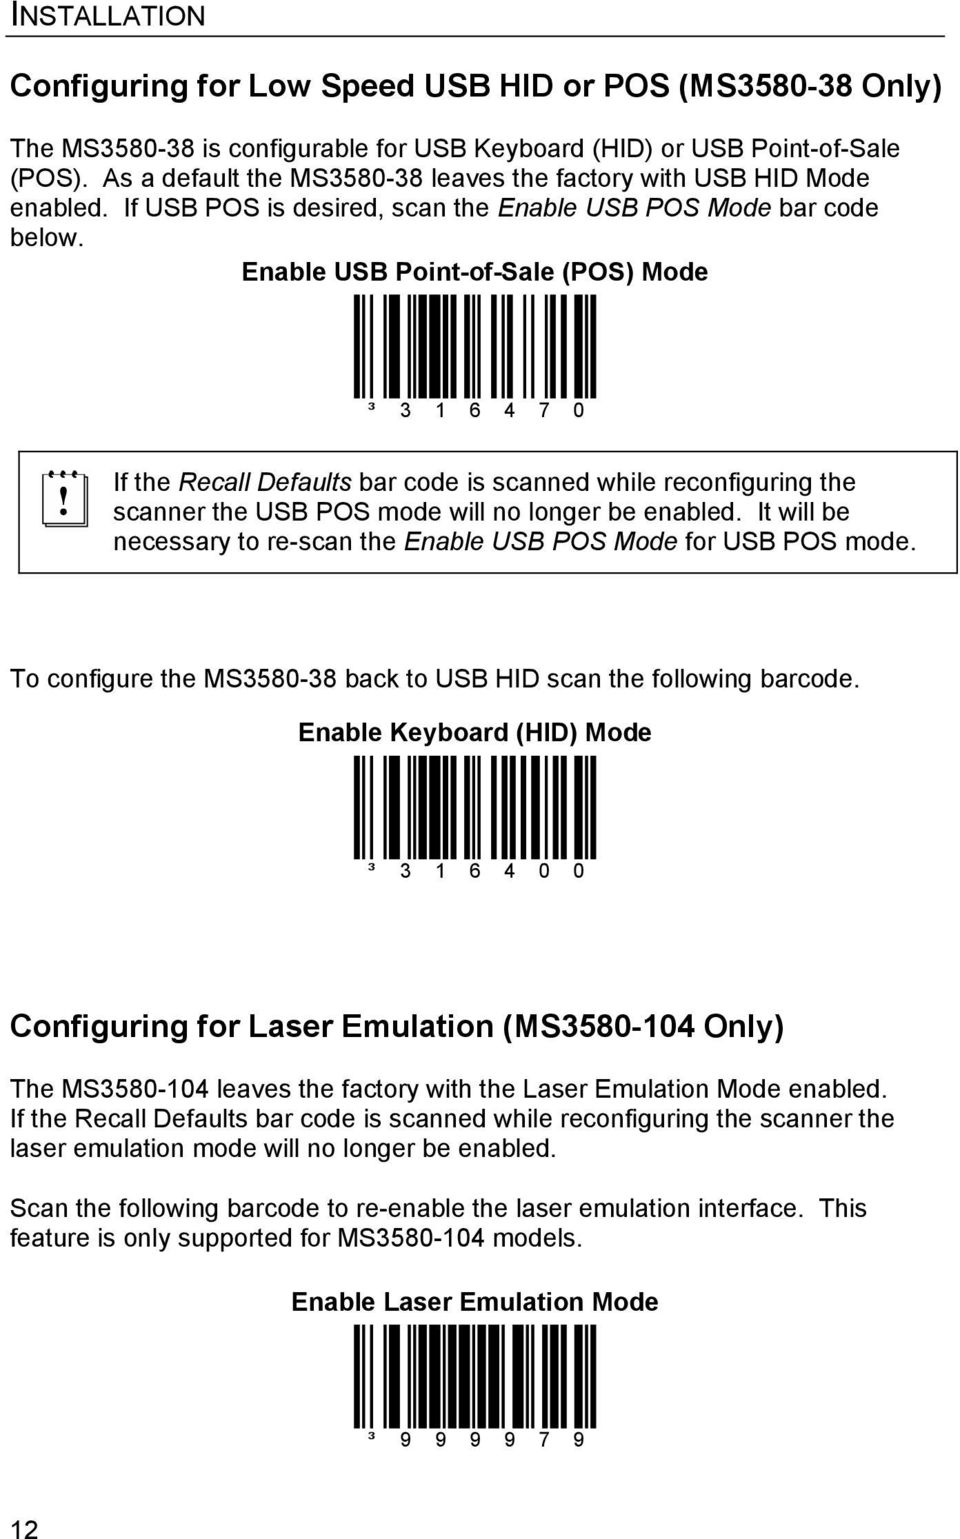 Enable USB Point-of-Sale (POS) Mode ³ 3 1 6 4 7 0 If the Recall Defaults bar code is scanned while reconfiguring the scanner the USB POS mode will no longer be enabled.